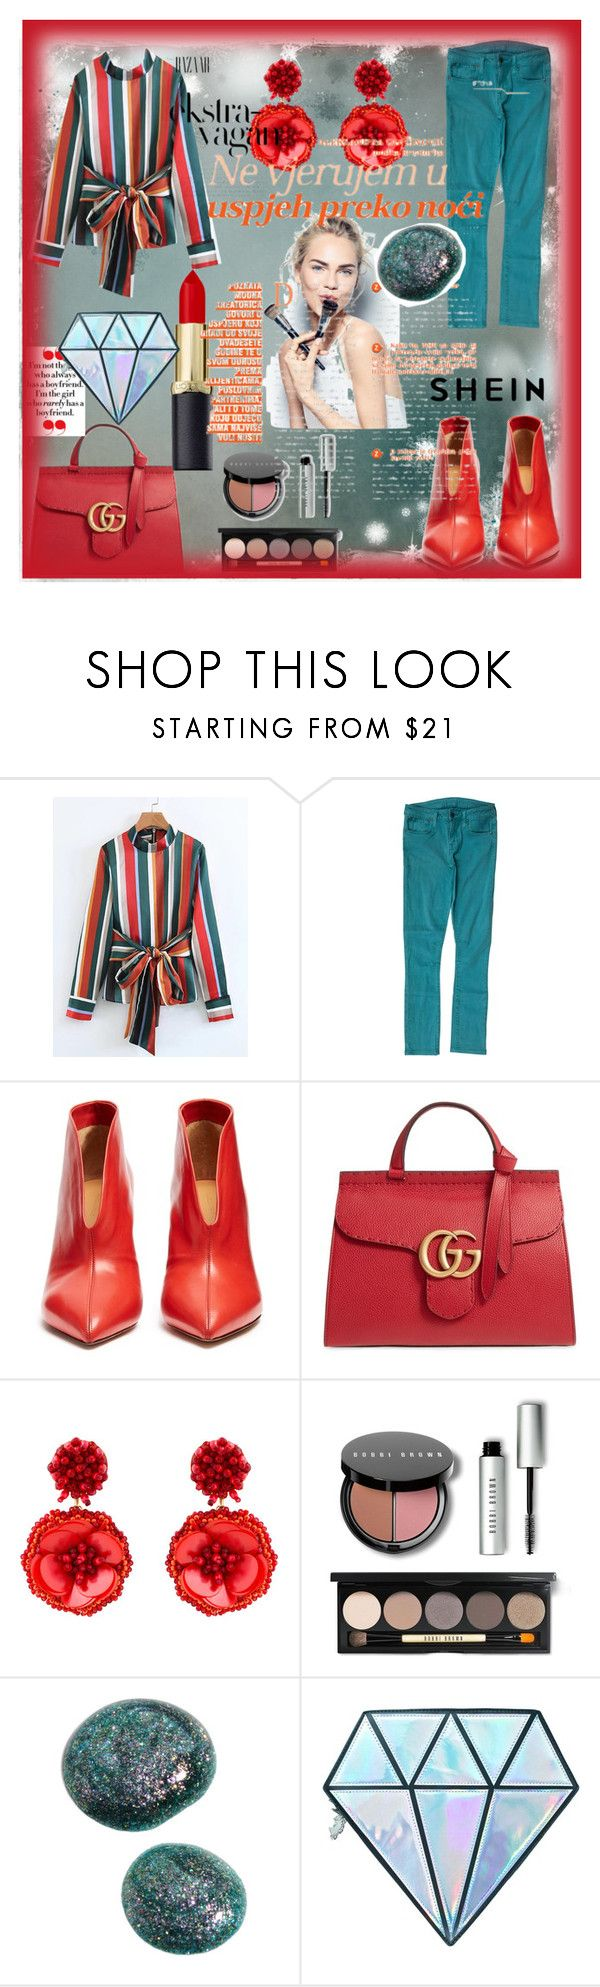 """shein"" by manusharma-ms ❤ liked on Polyvore featuring Helmut by Helmut Lang, Isabel Marant, Gucci, Mignonne Gavigan, Sephora Collection, Bobbi Brown Cosmetics and Unicorn Lashes"